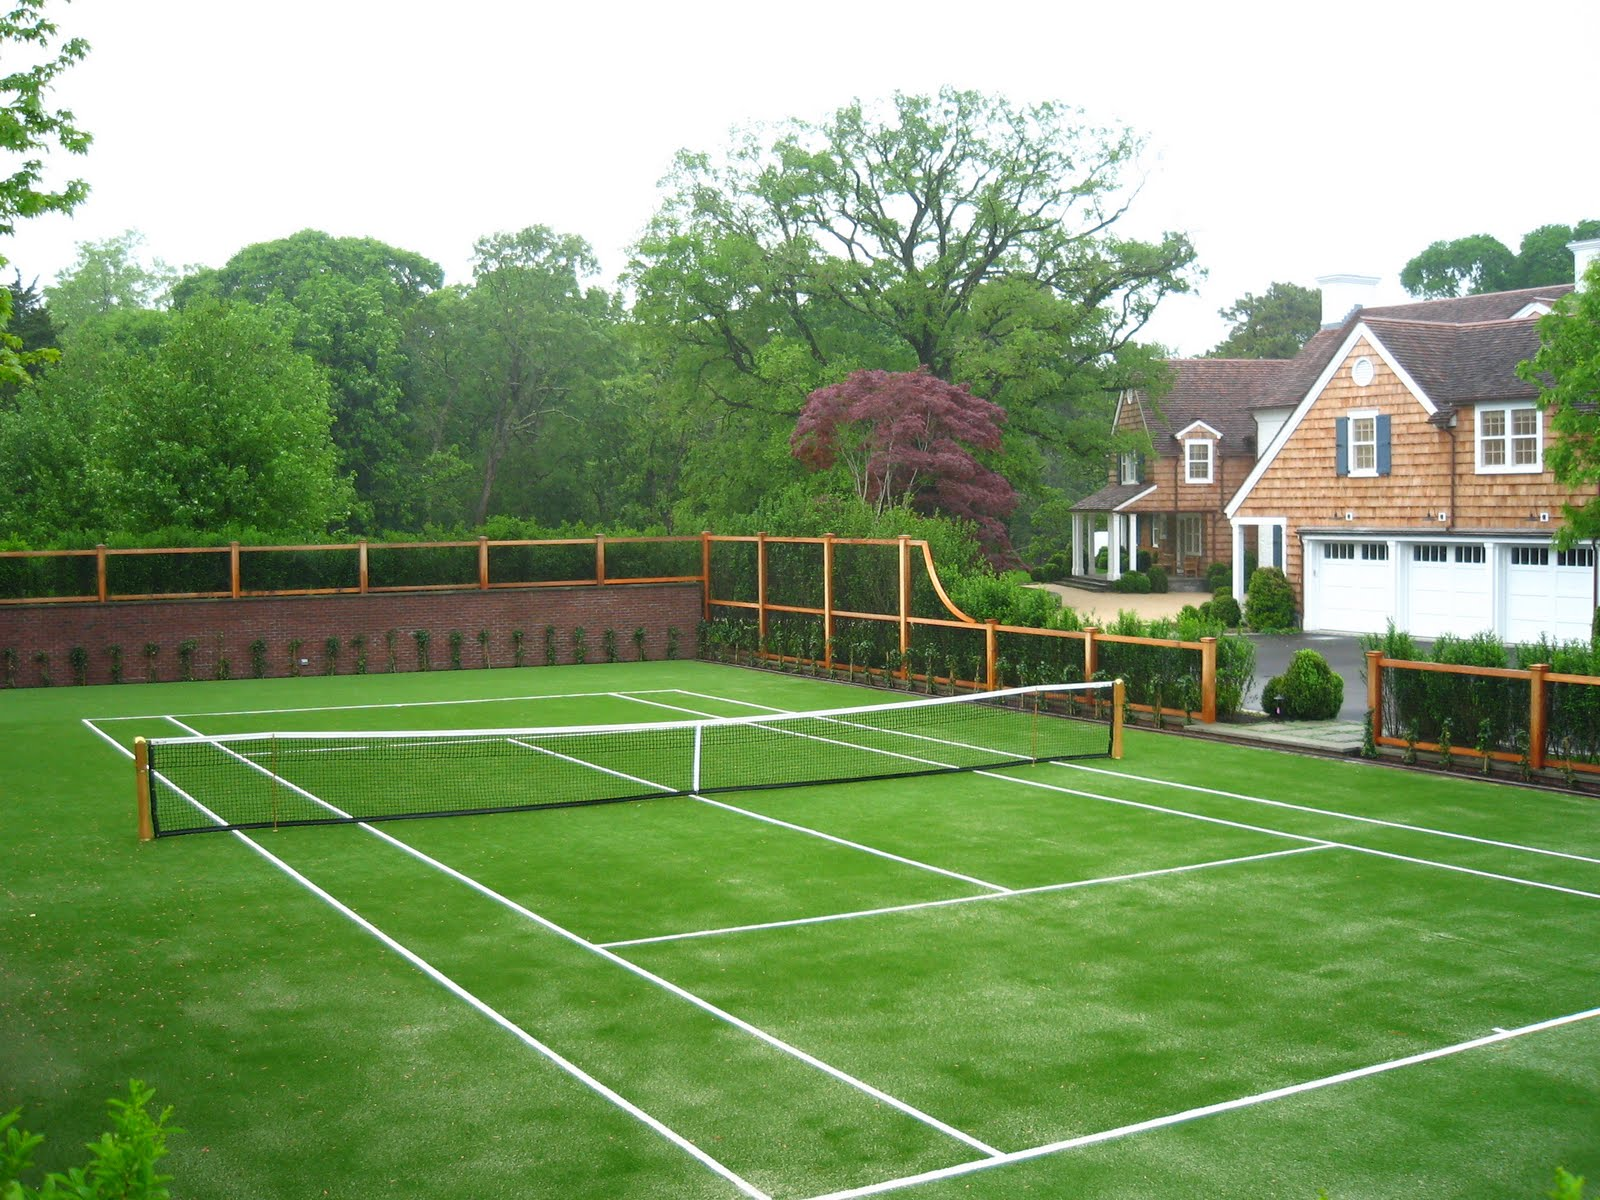 How To Make Tennis Court In Backyard : TENNIS COURTMULTIPURPOSE FIELD